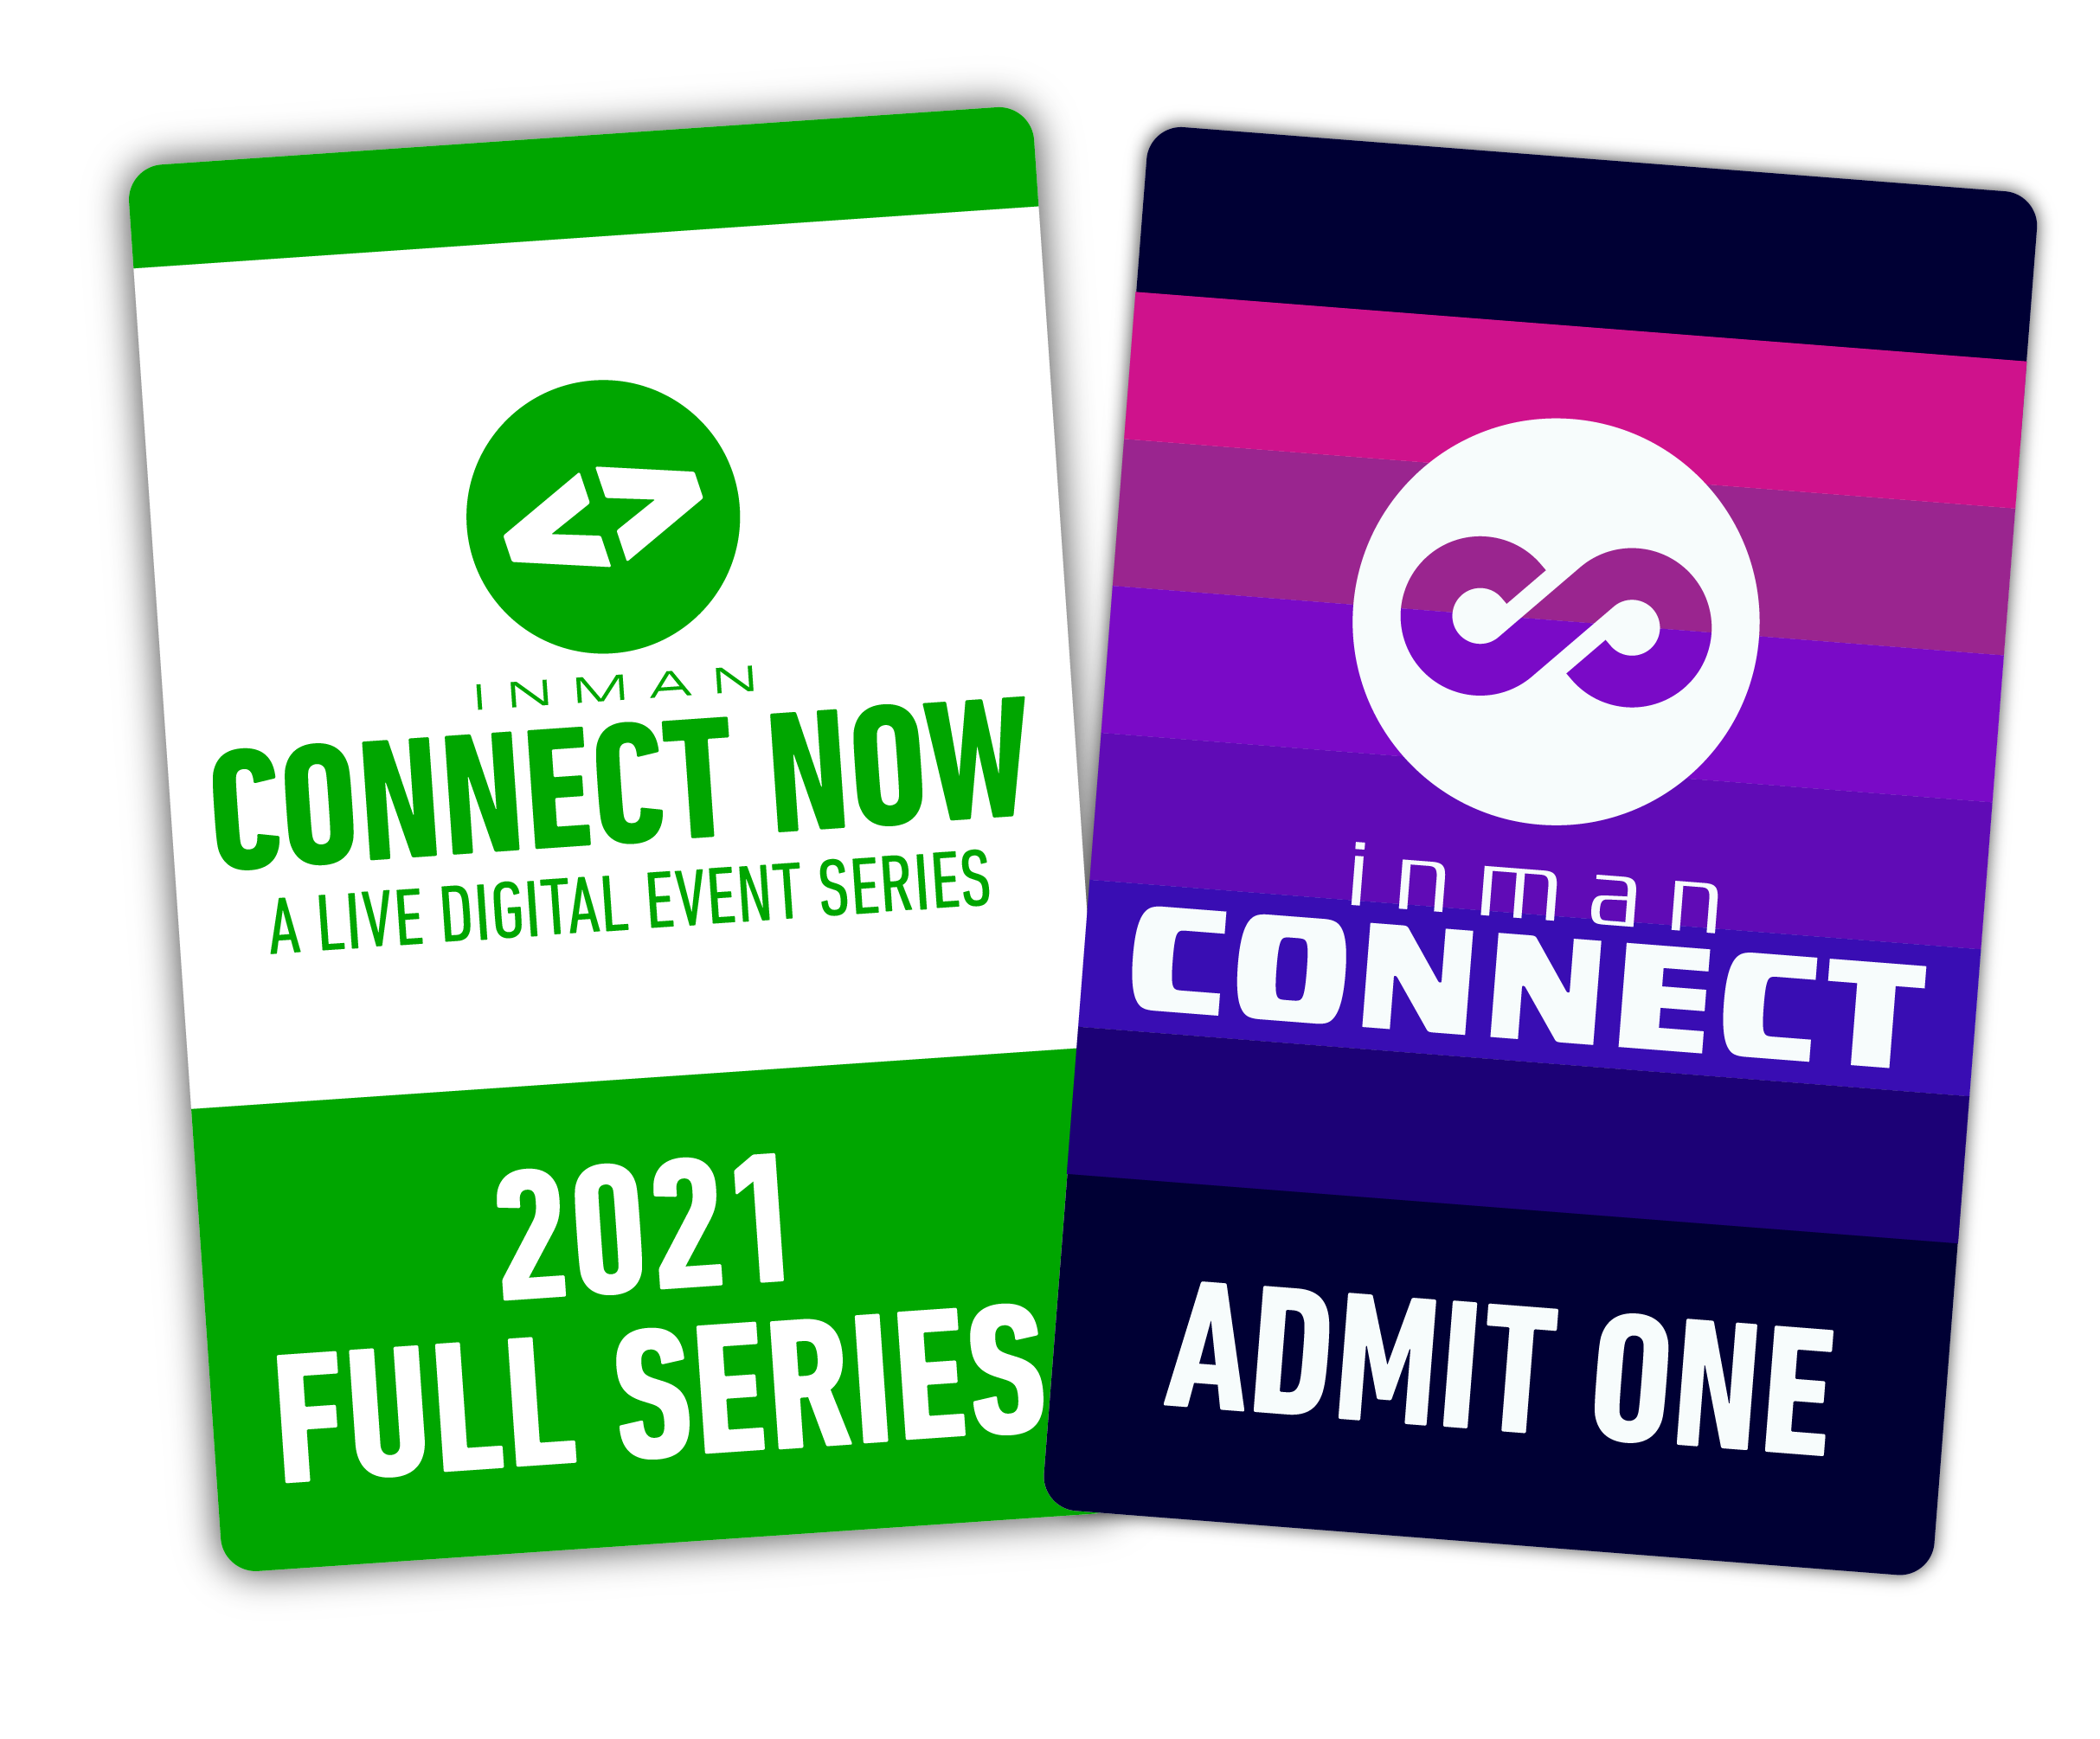 TEST 10-Event Bundle: June Inman Connect + Connect Now Full Series